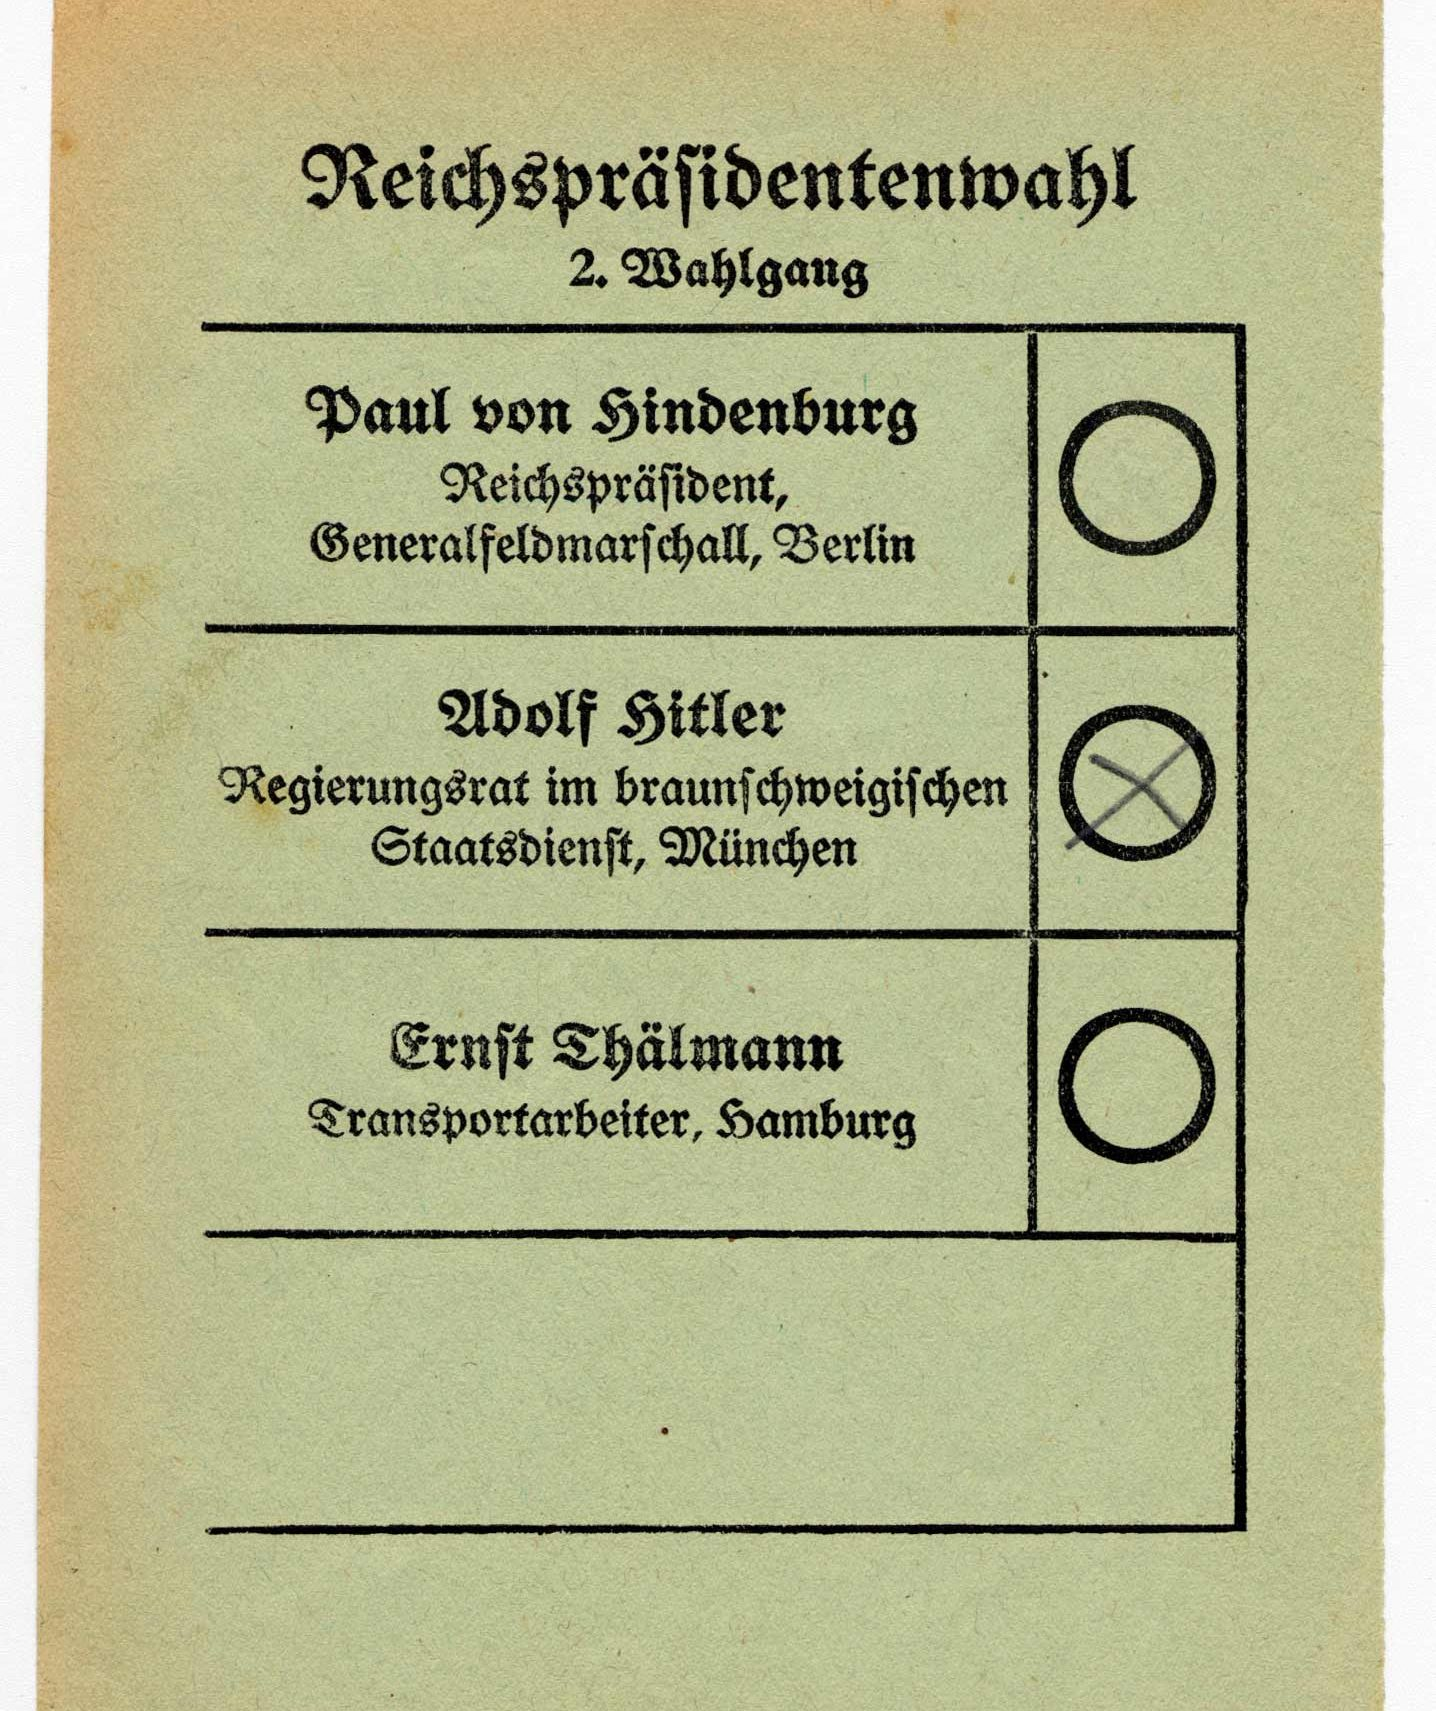 1932 election ballot in Germany showing a vote for Adolf Hitler